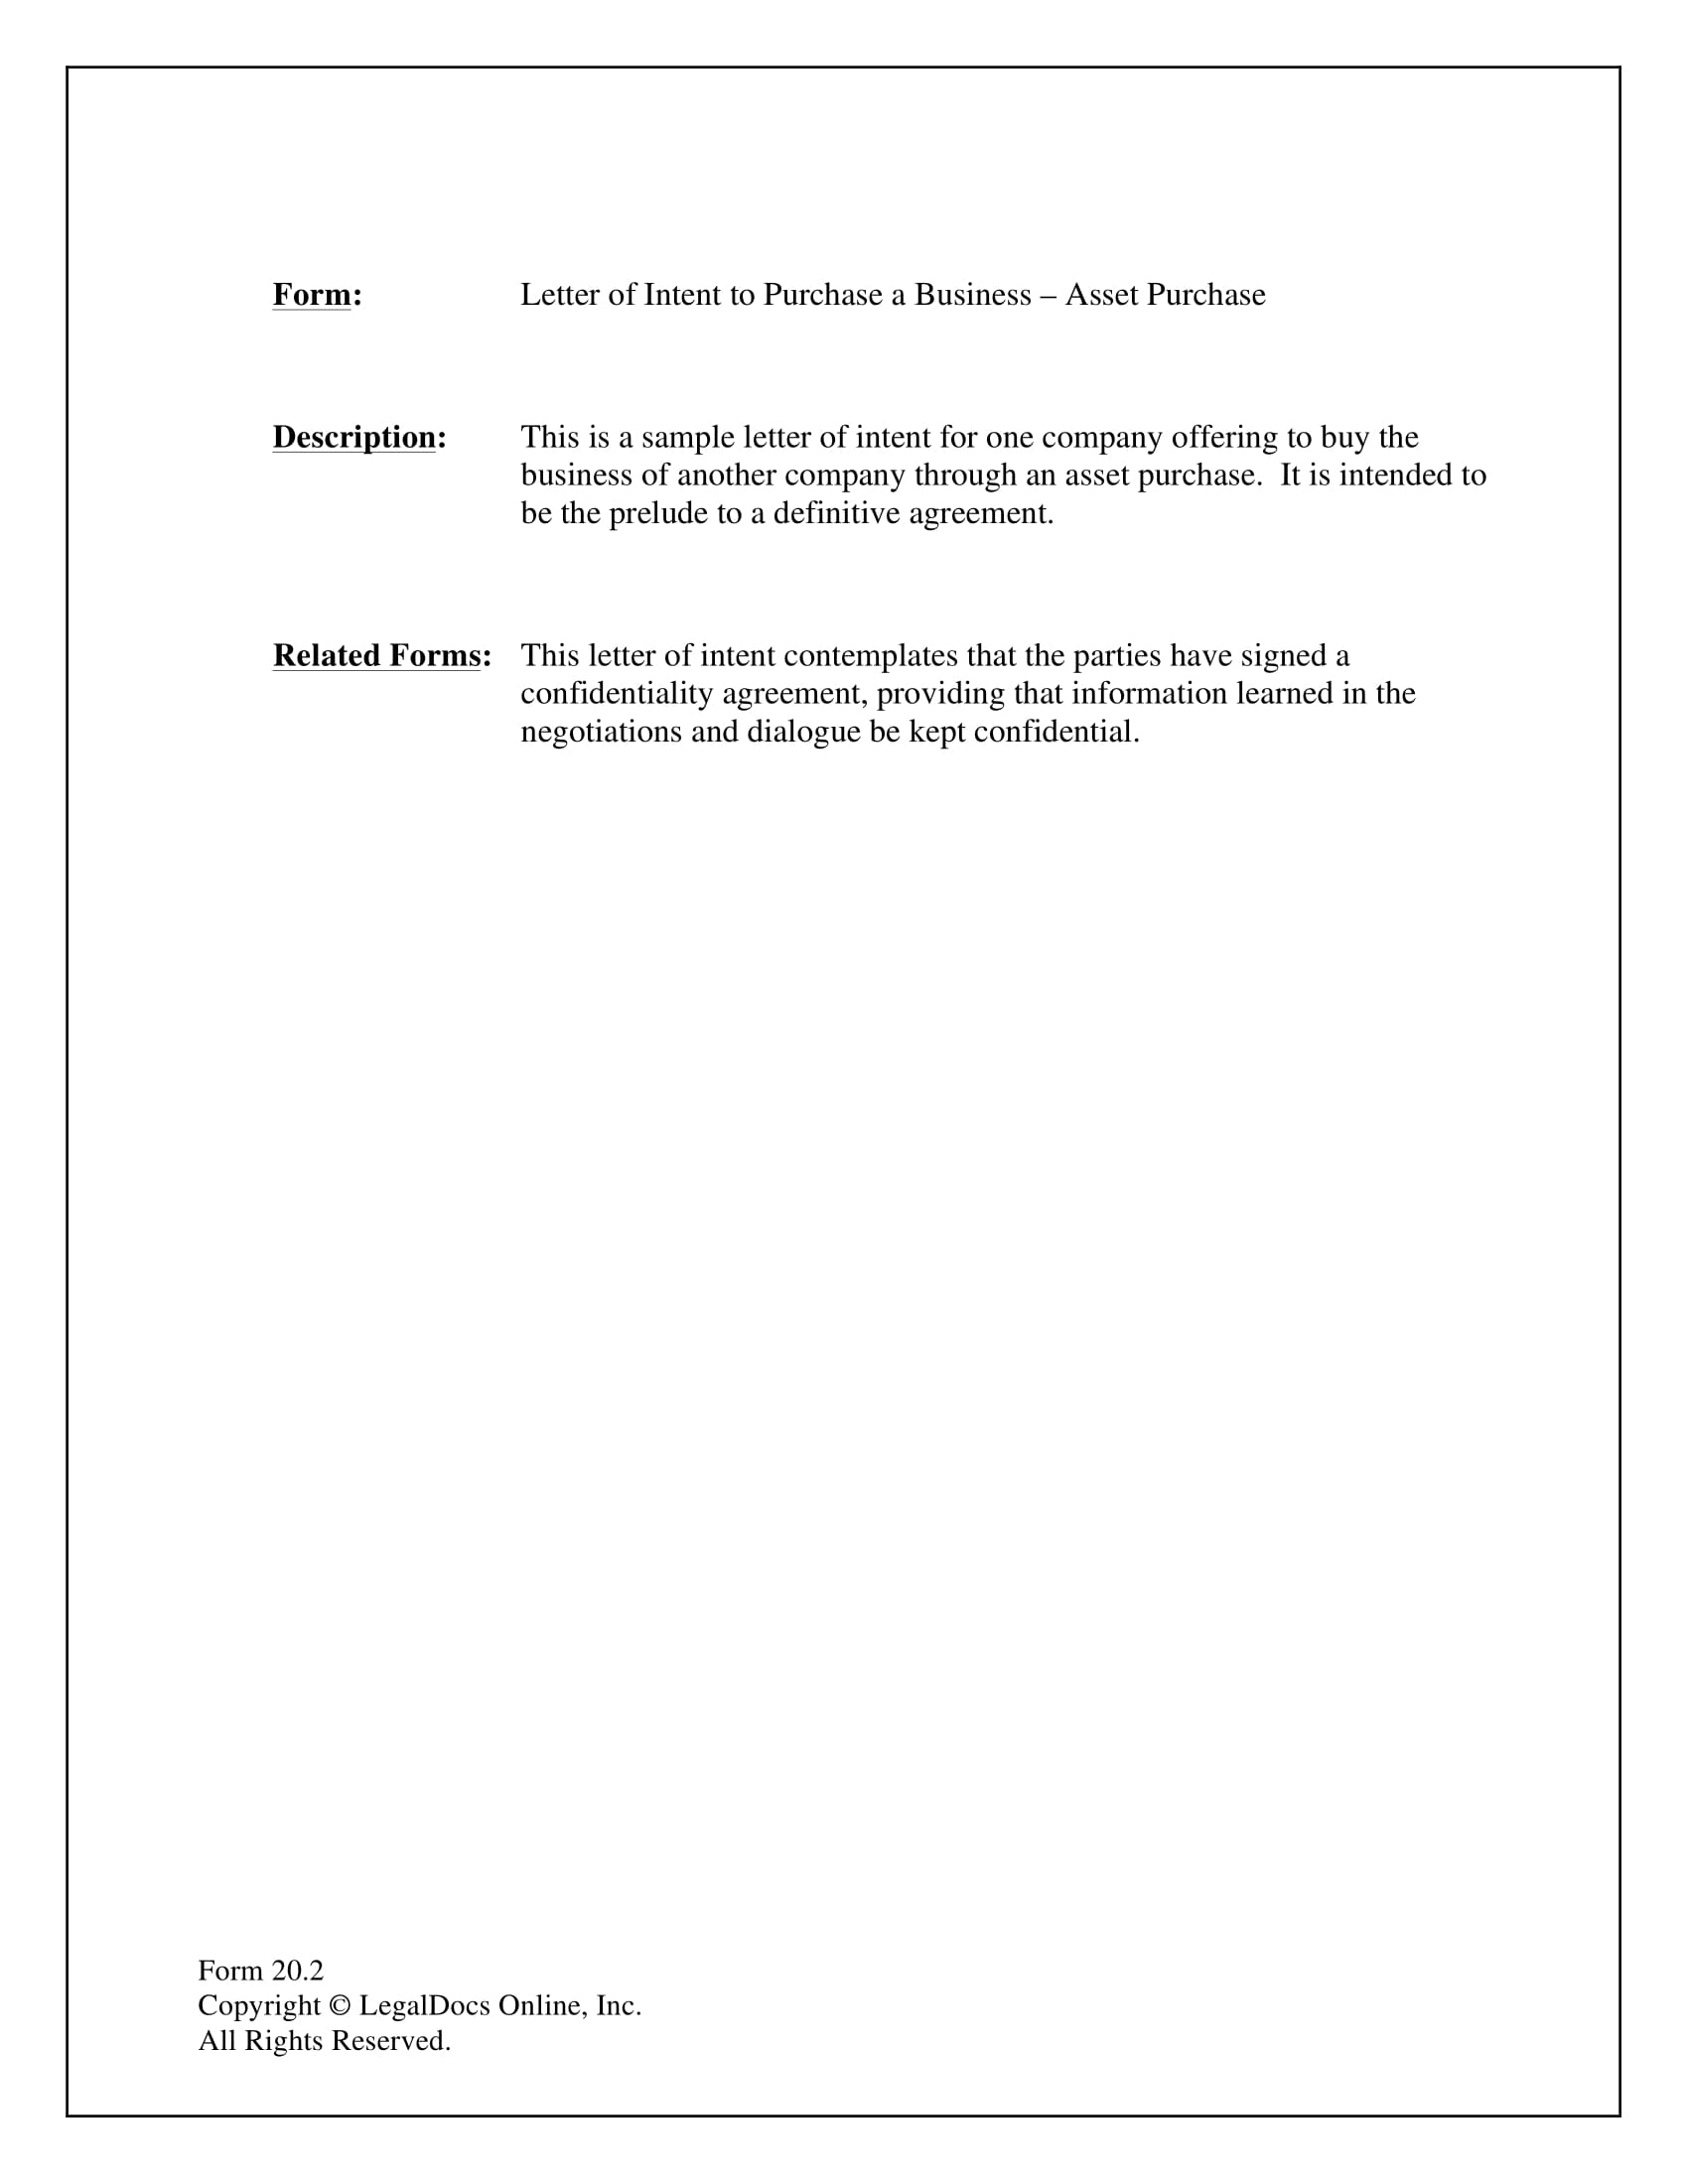 letter of intent to purchase a business example 1